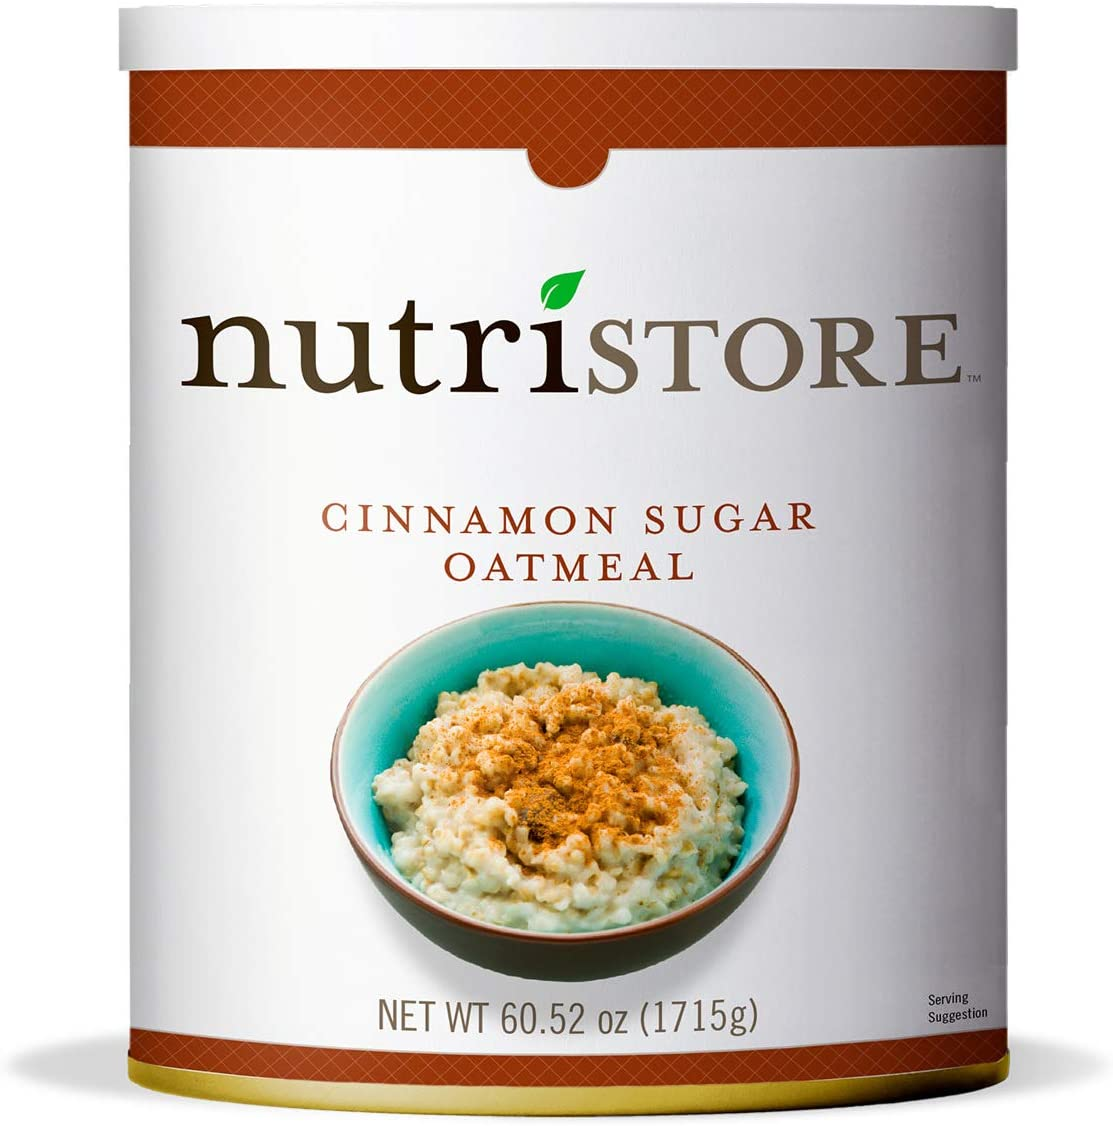 Nutristore Cinnamon Oatmeal #10 Can | Premium Variety Ready to Eat Meals | Bulk Emergency Food Supply | Breakfast, Lunch, Dinner | MRE | Long Term Survival Storage | 25 Year Shelf Life